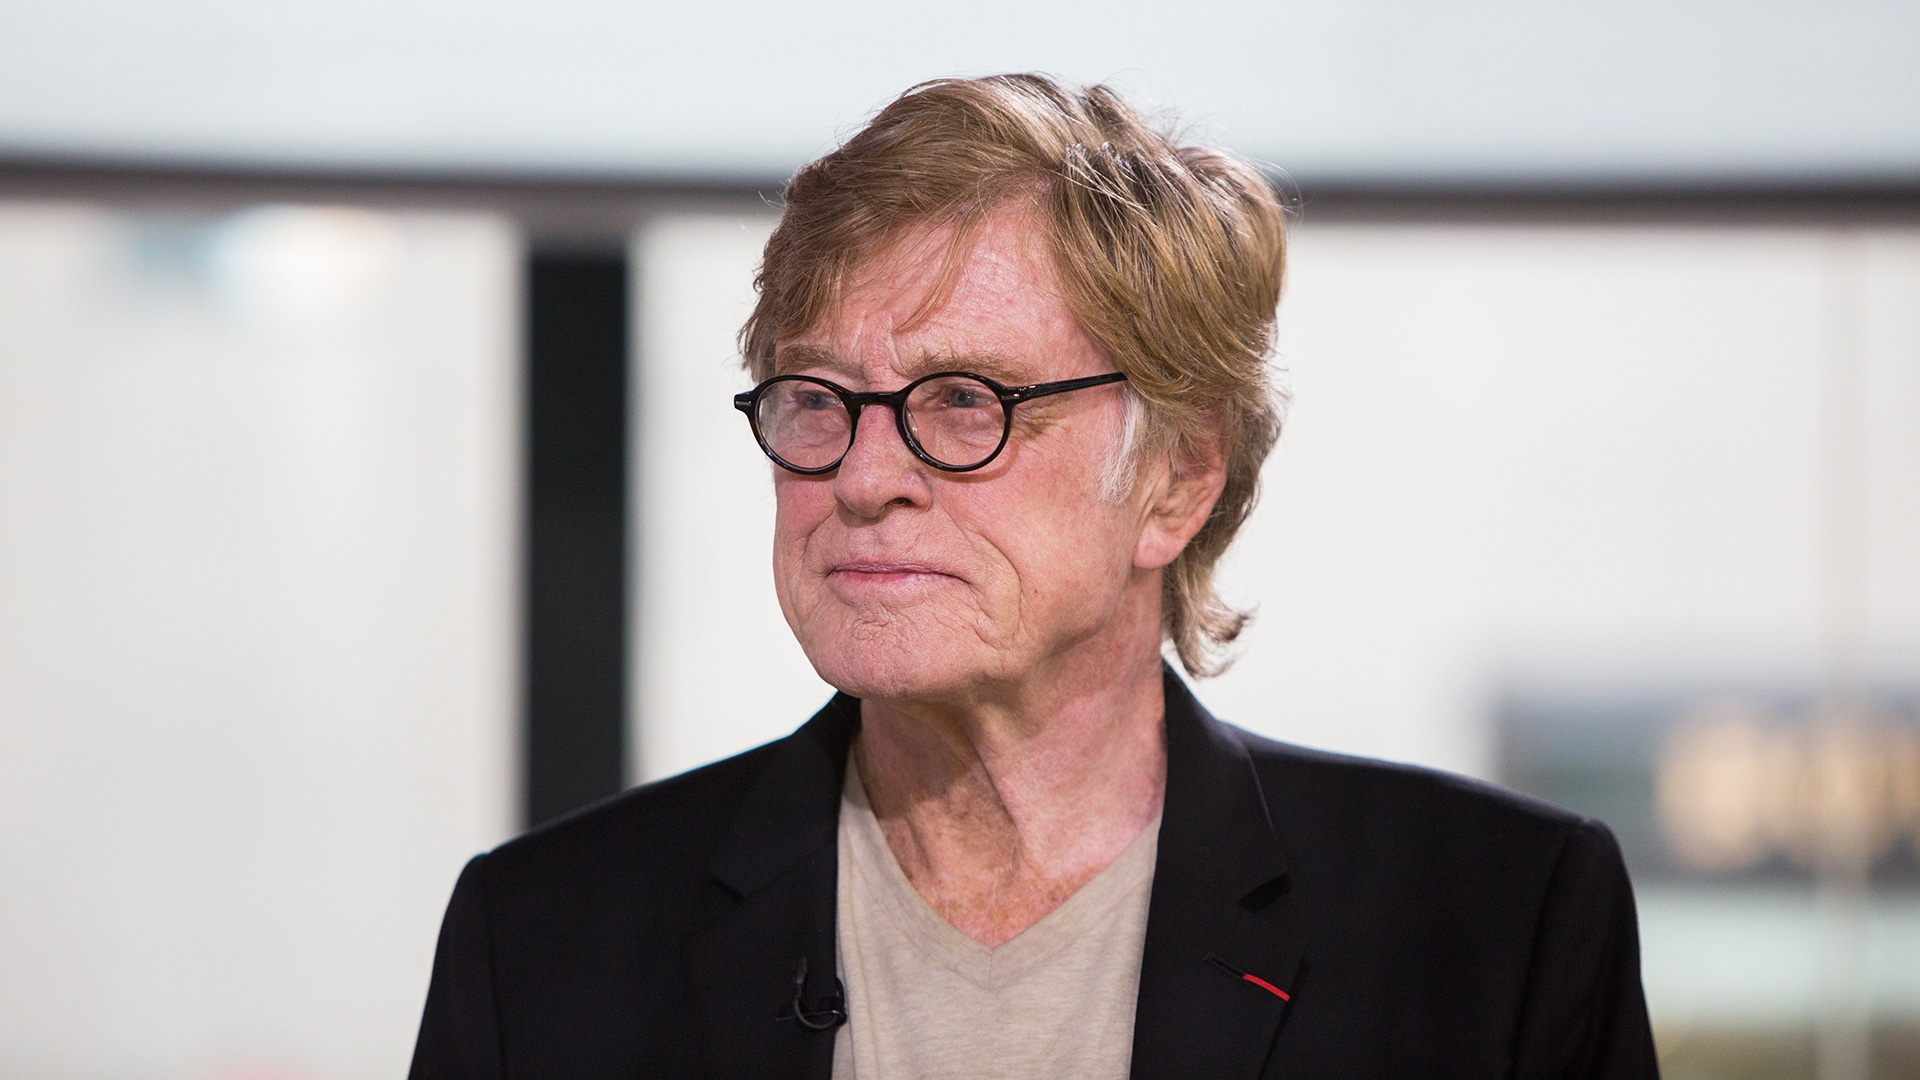 Robert Redford American Actor, Director, Producer